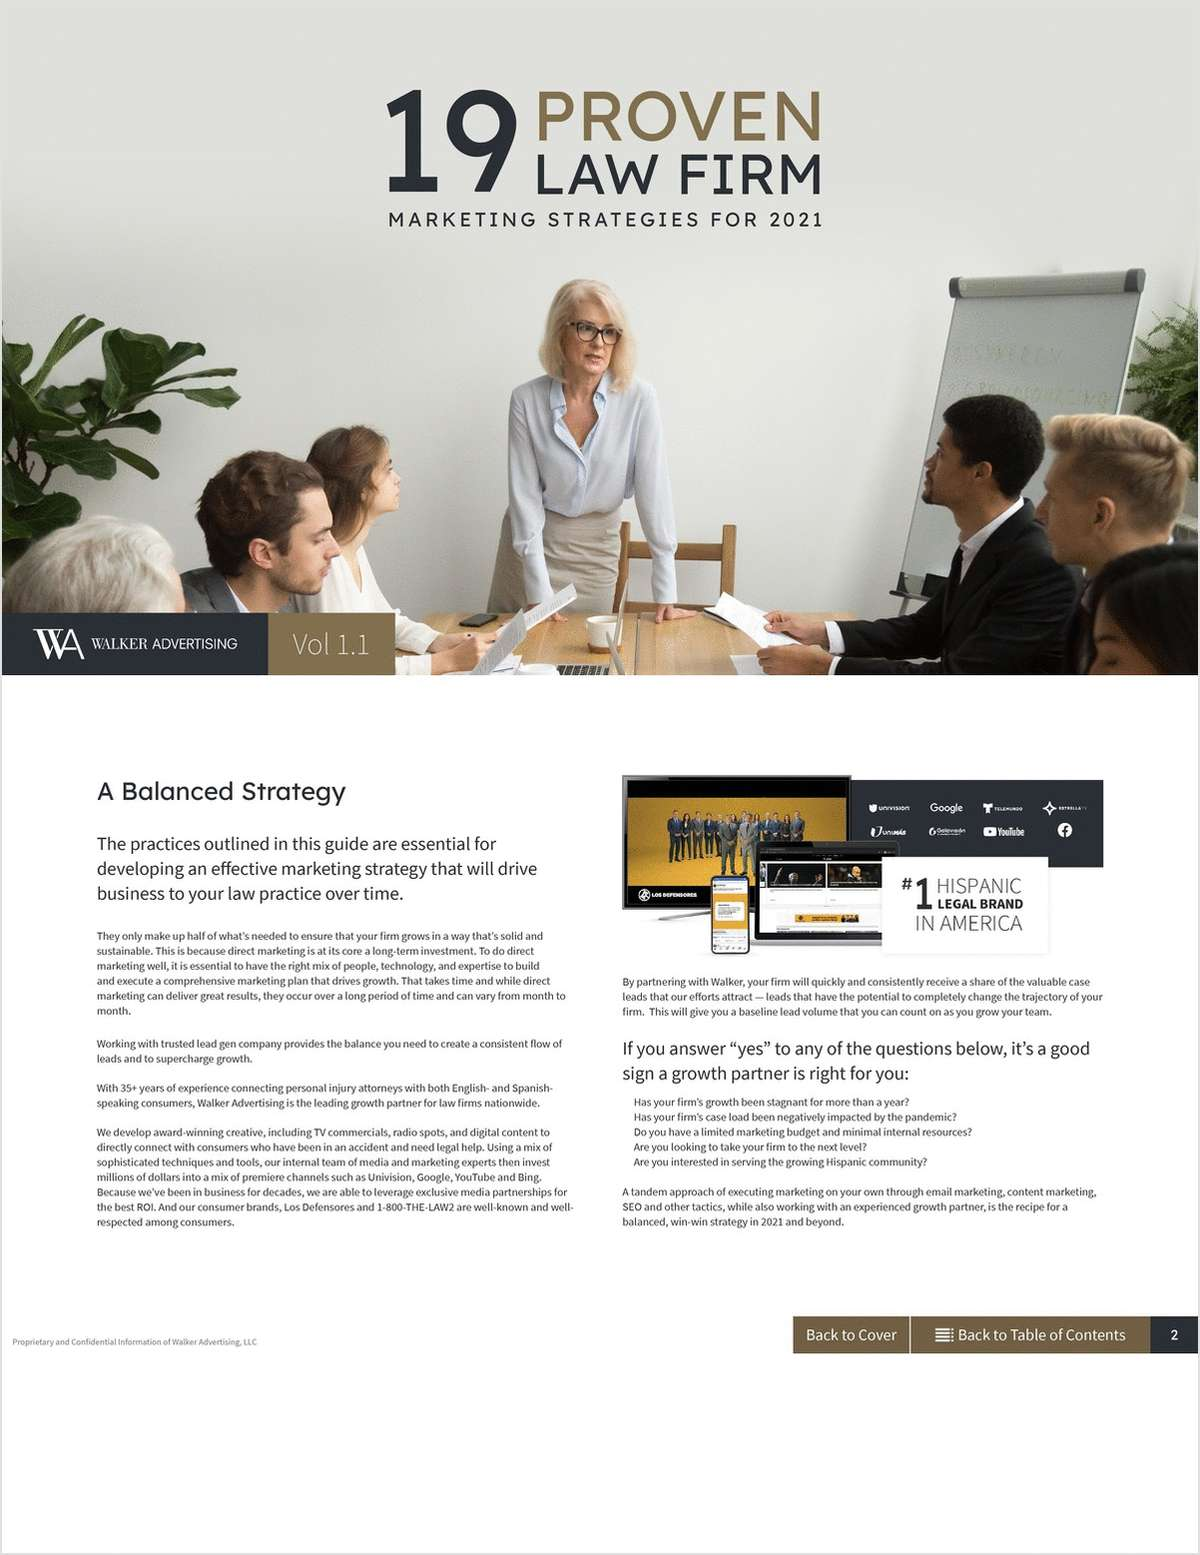 An effective marketing strategy is essential for driving business to your firm. Discover proven tools and techniques in this ultimate, in-depth guide that you can take action on today.